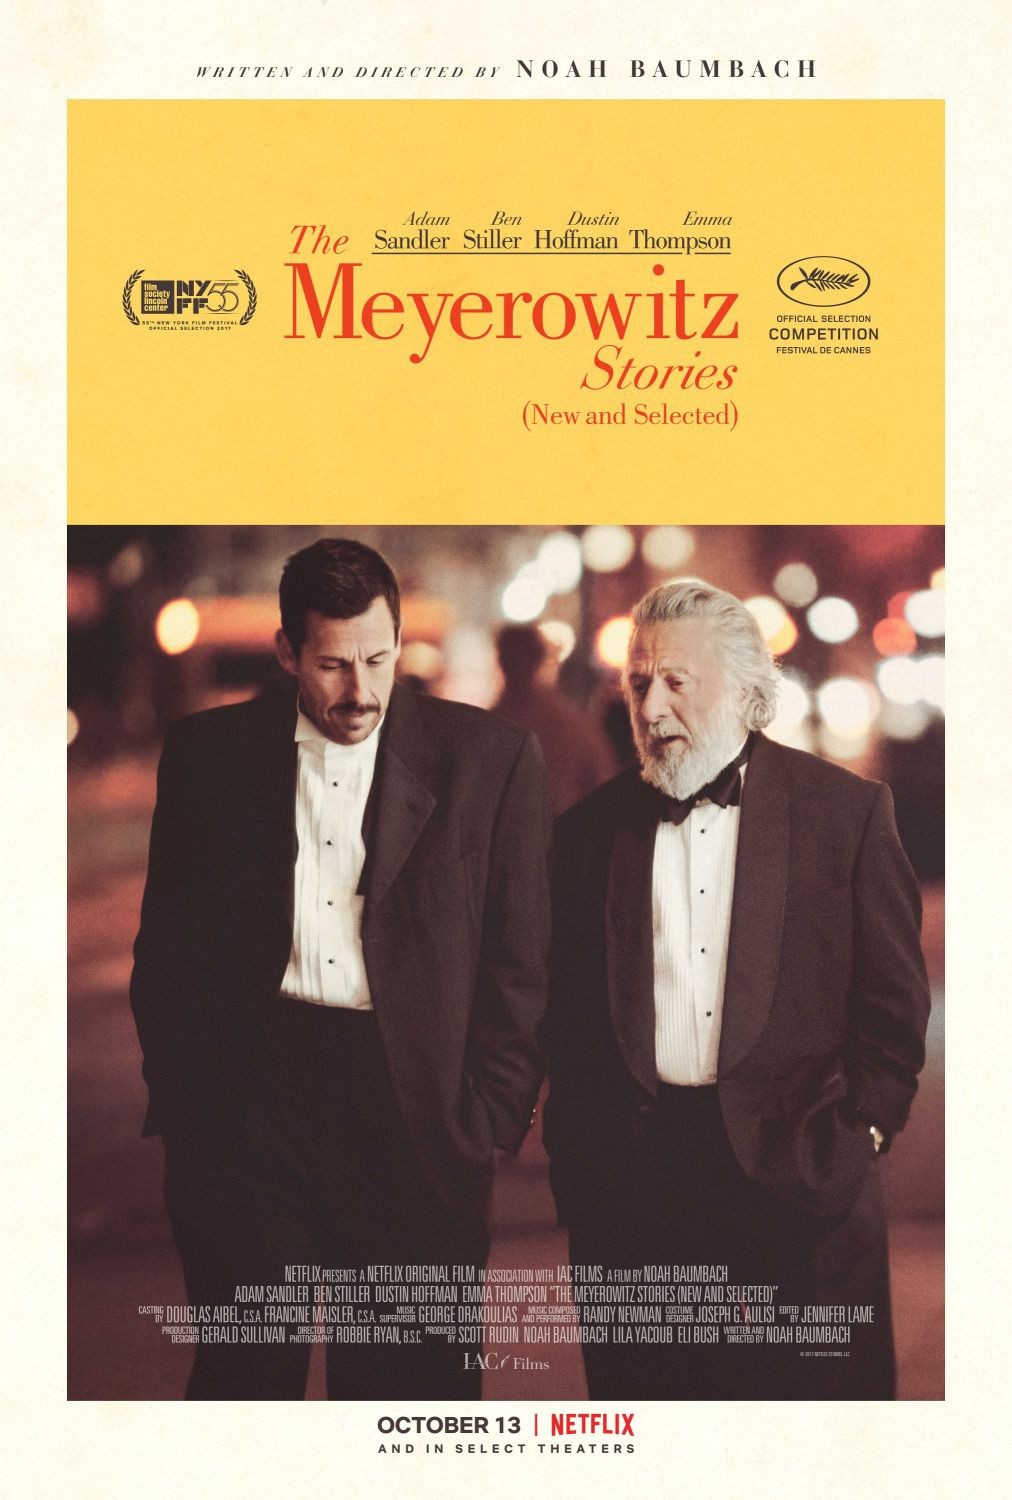 The Meyerowitz stories - Adam Sandler - Dustin Hoffman - film poster